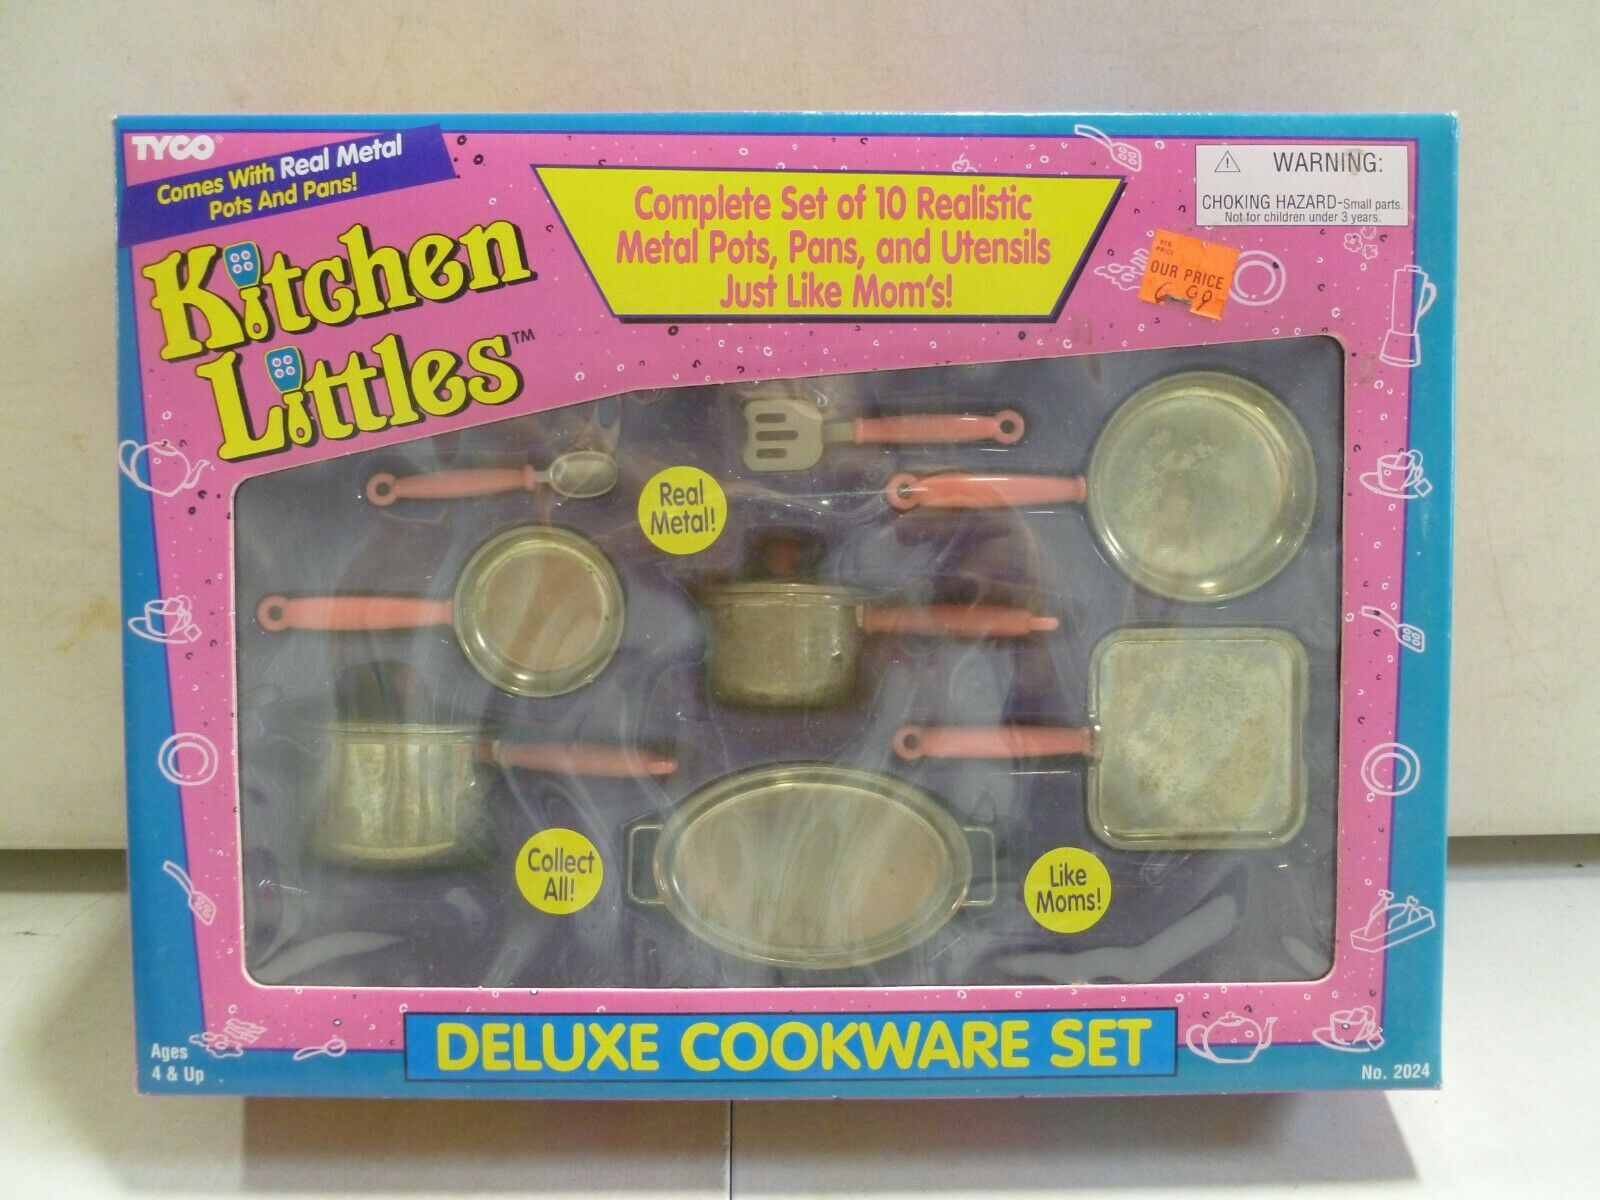 1995 Tyco Kitchen Littles Deluxe Cookware Set